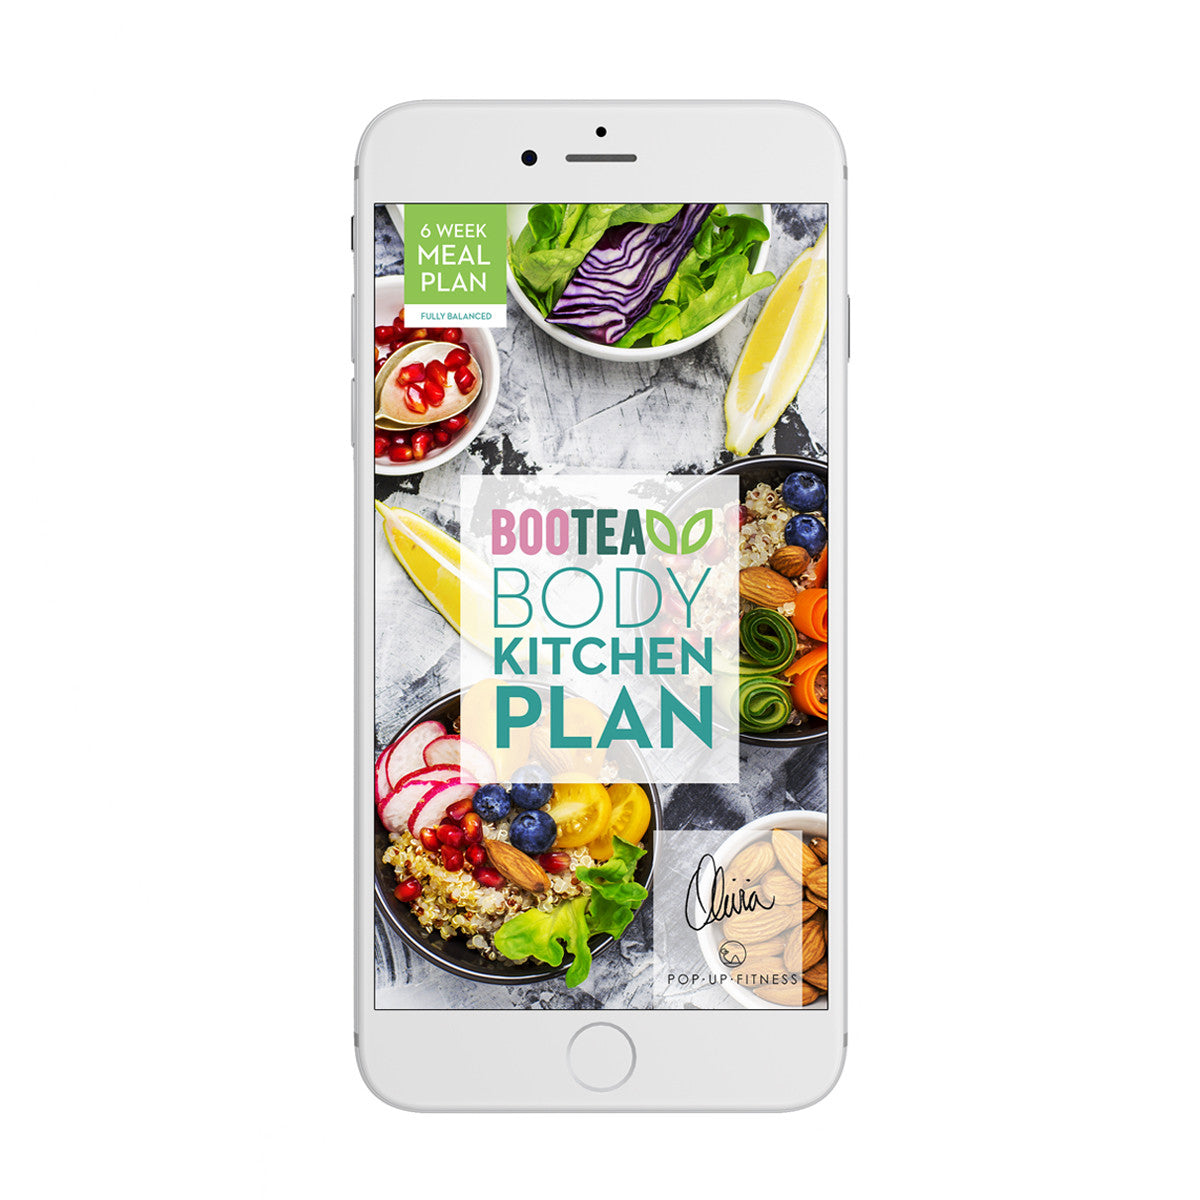 Bootea Body Plan on smartphone